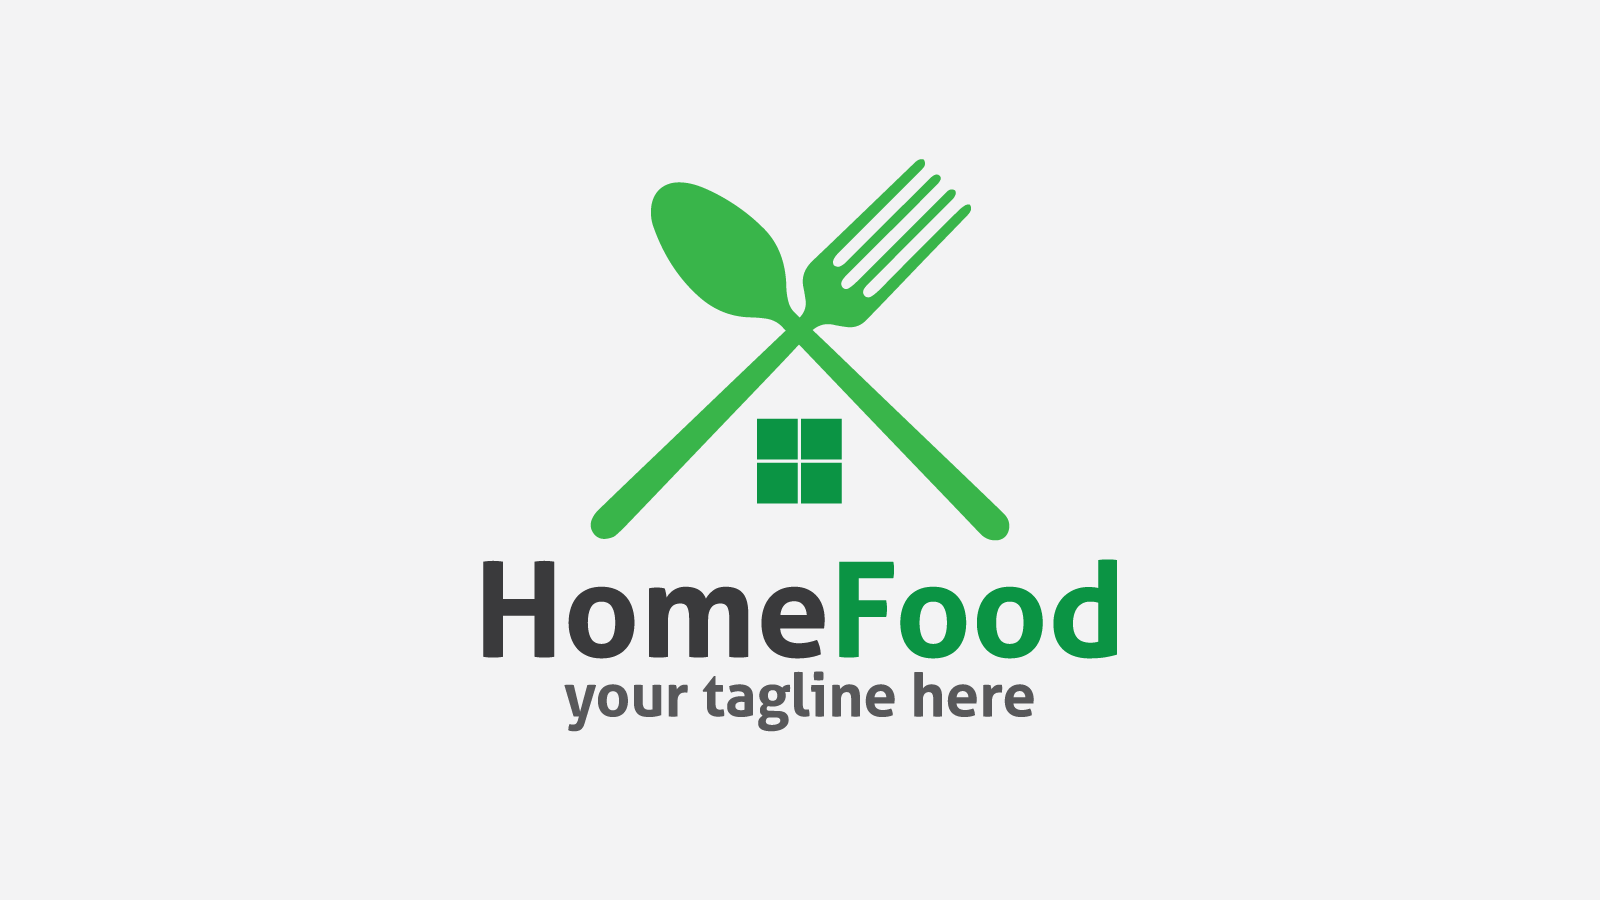 HomeFood free logo design.